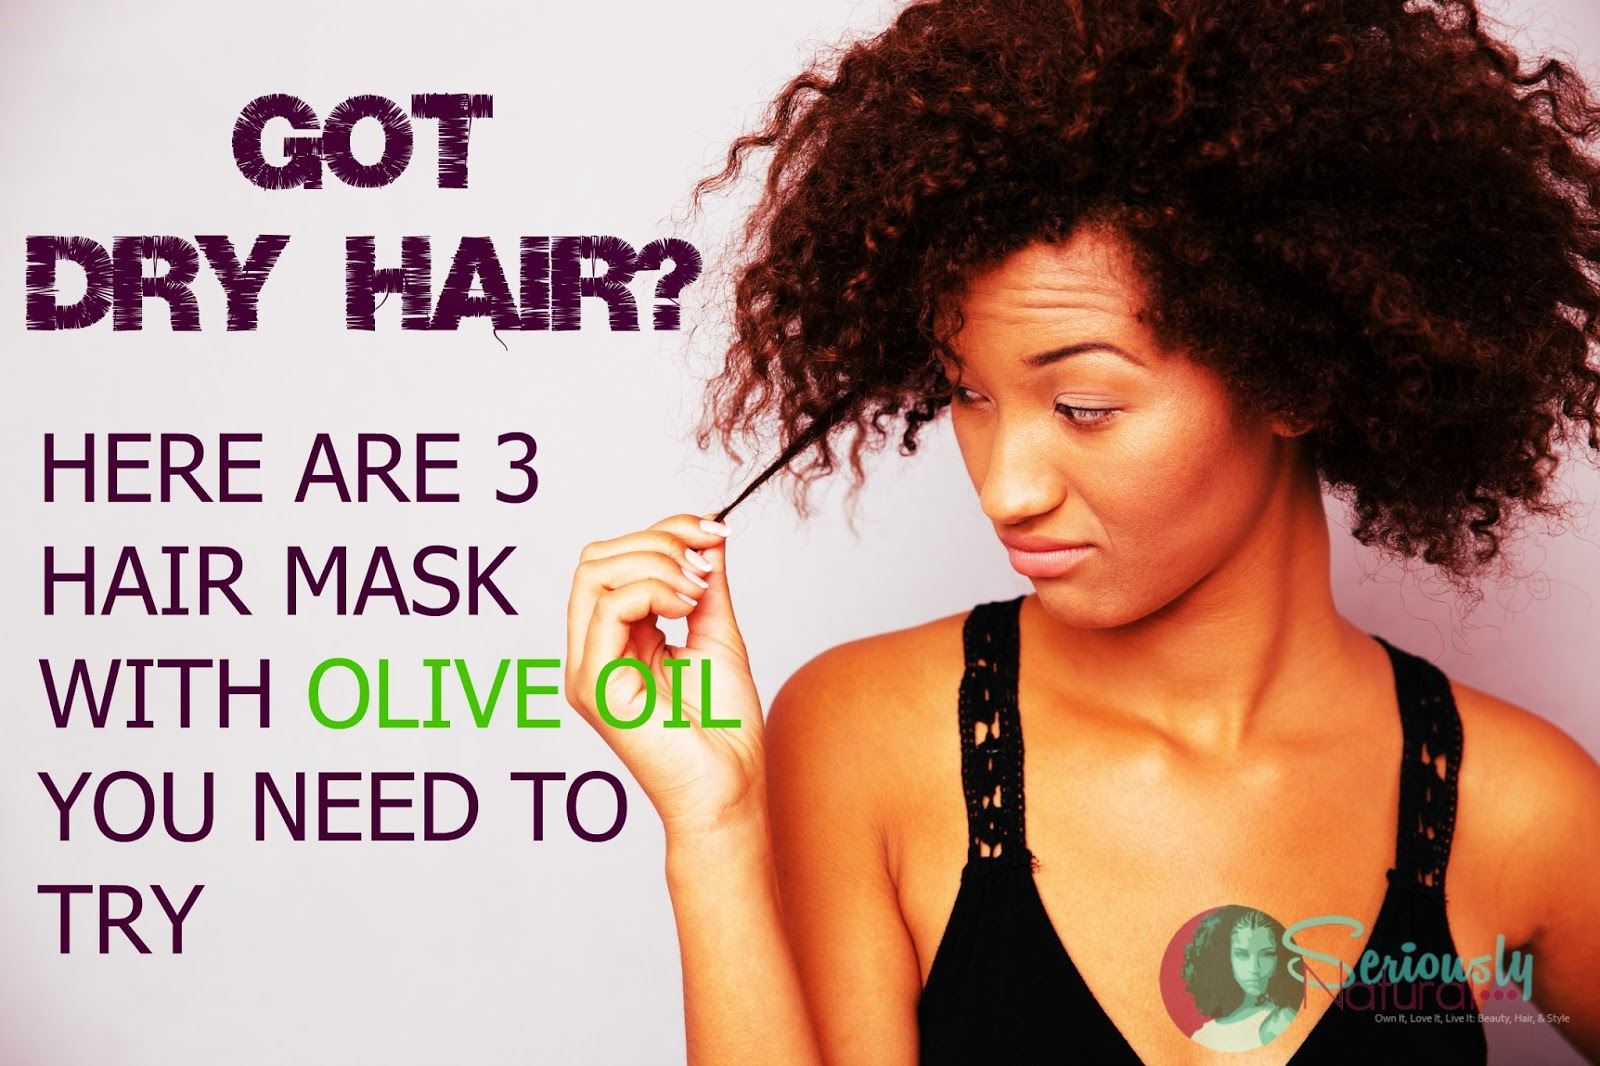 HERE ARE 3 HAIR MASK WITH OLIVE OIL YOU NEED TO TRY